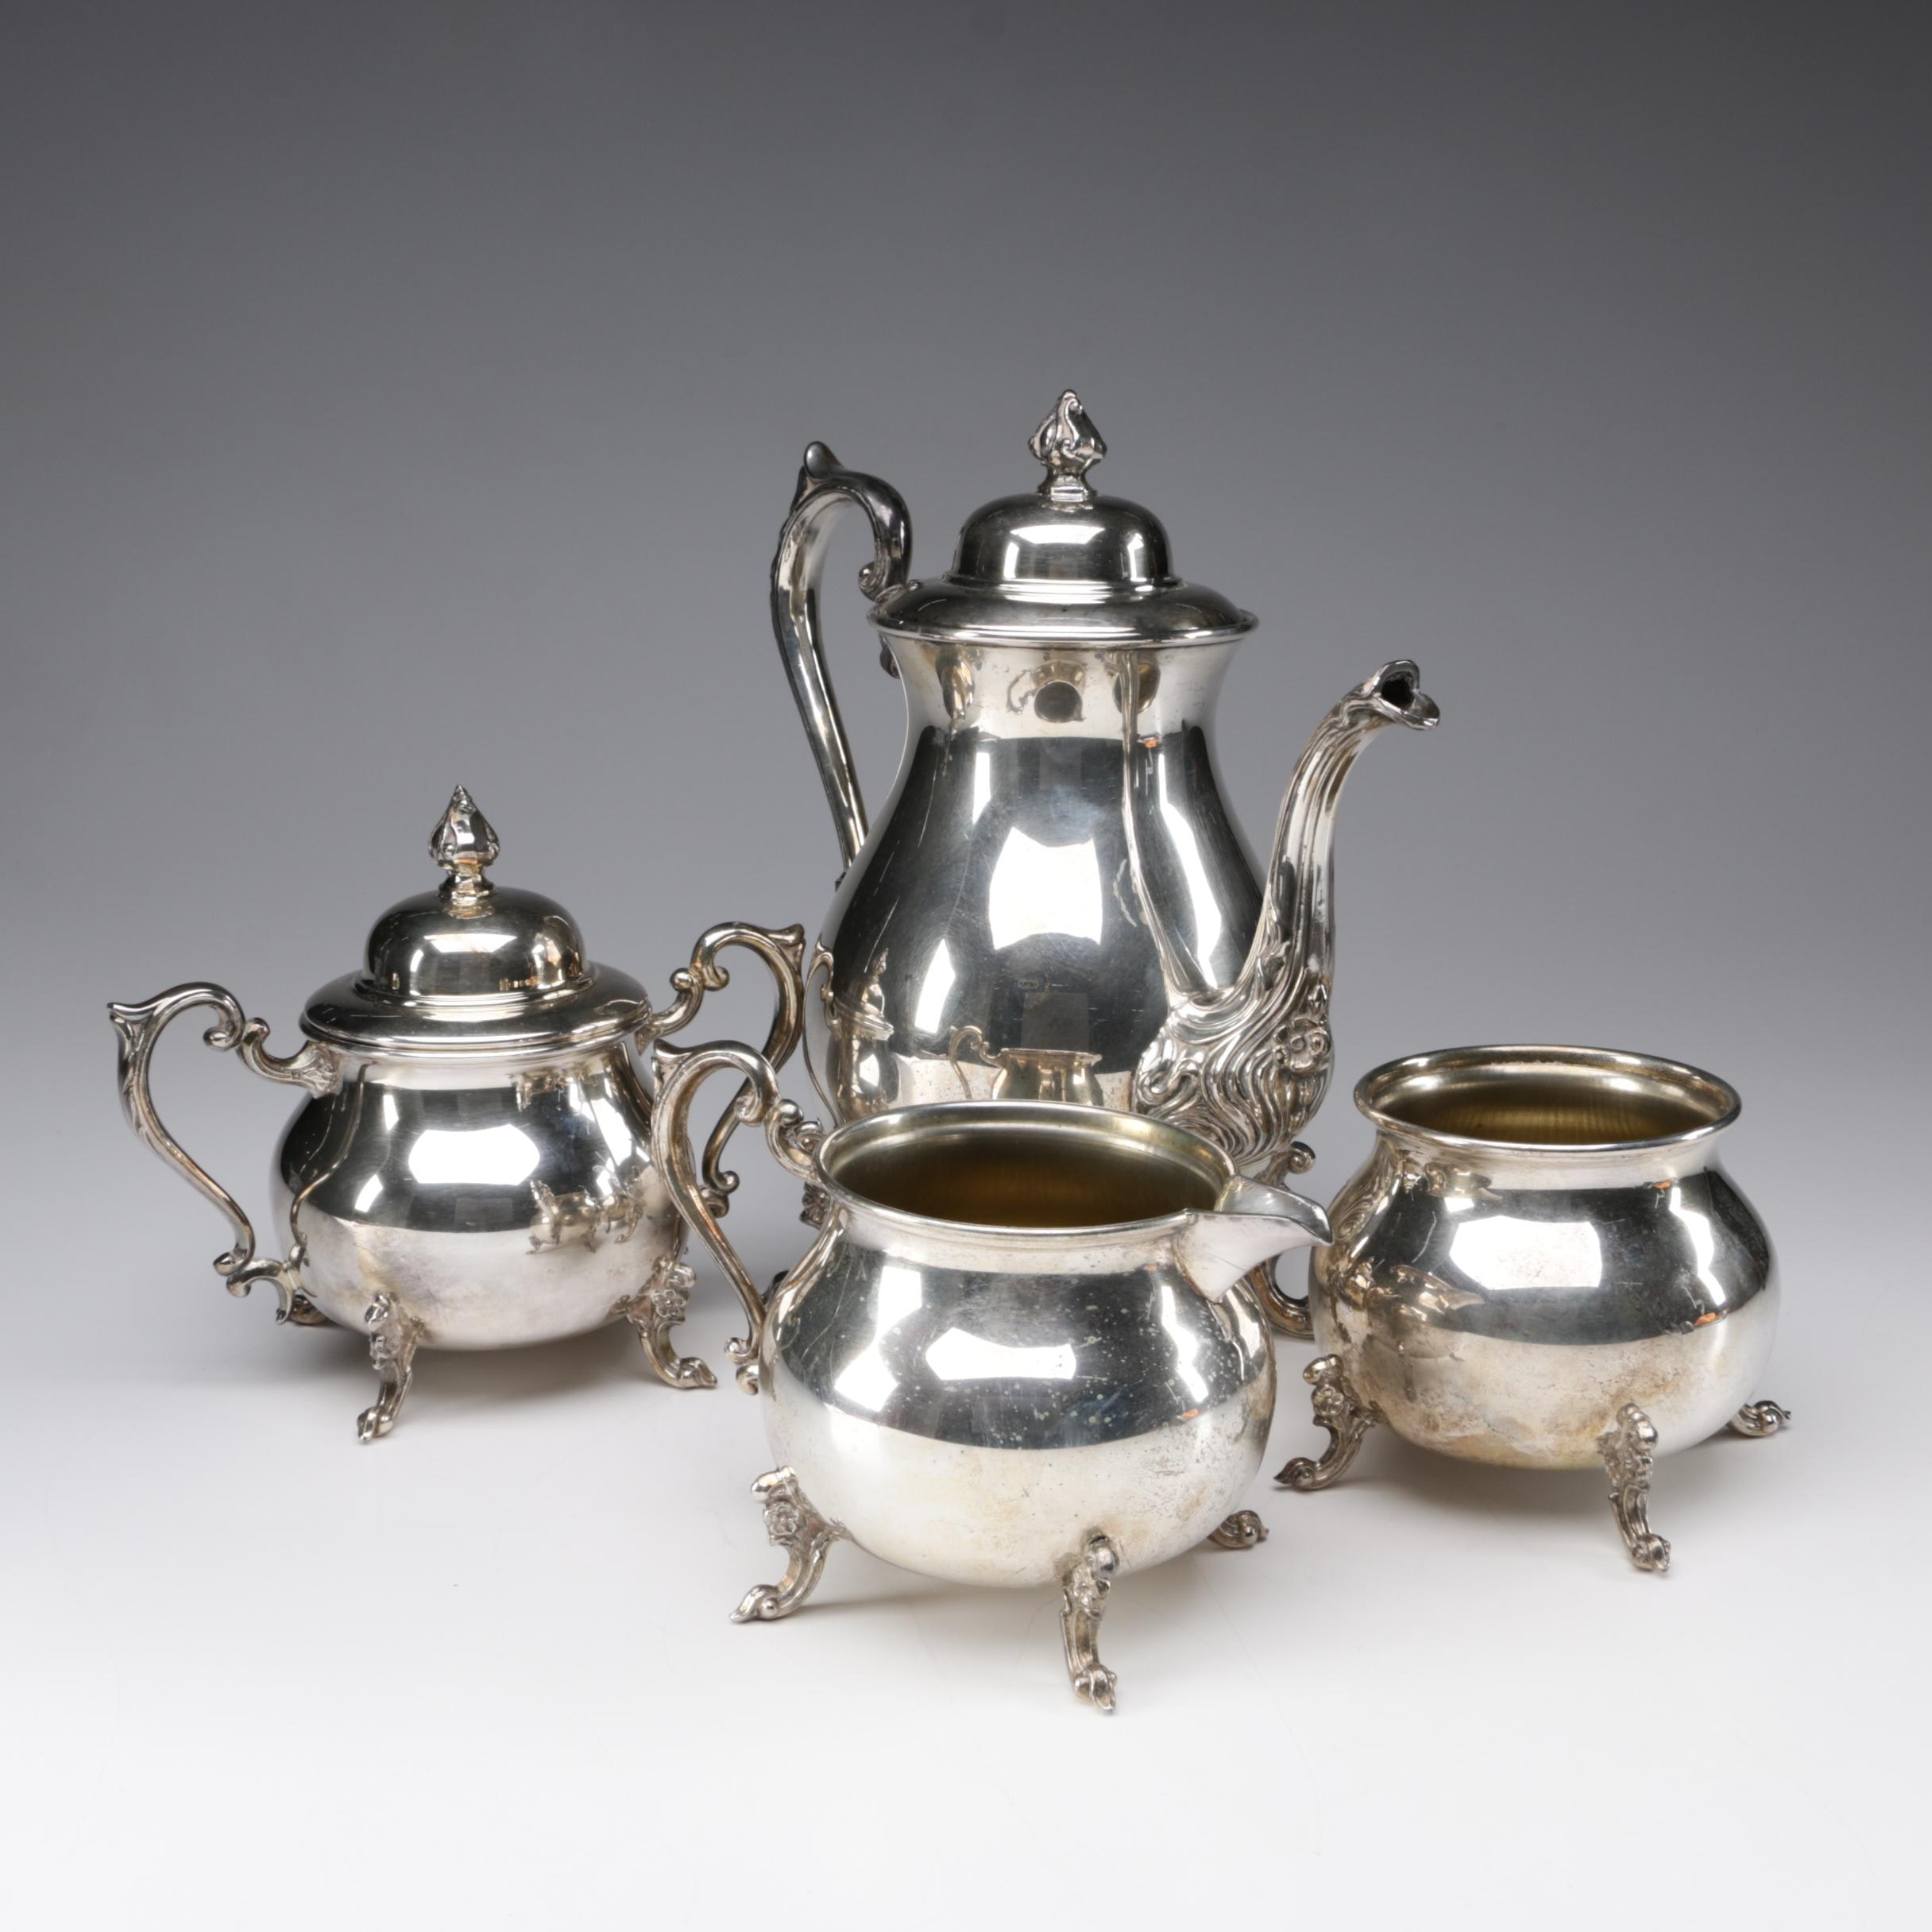 Sheridan Silver Co. Silver Plate on Copper Coffee Set, 1946 - 1973